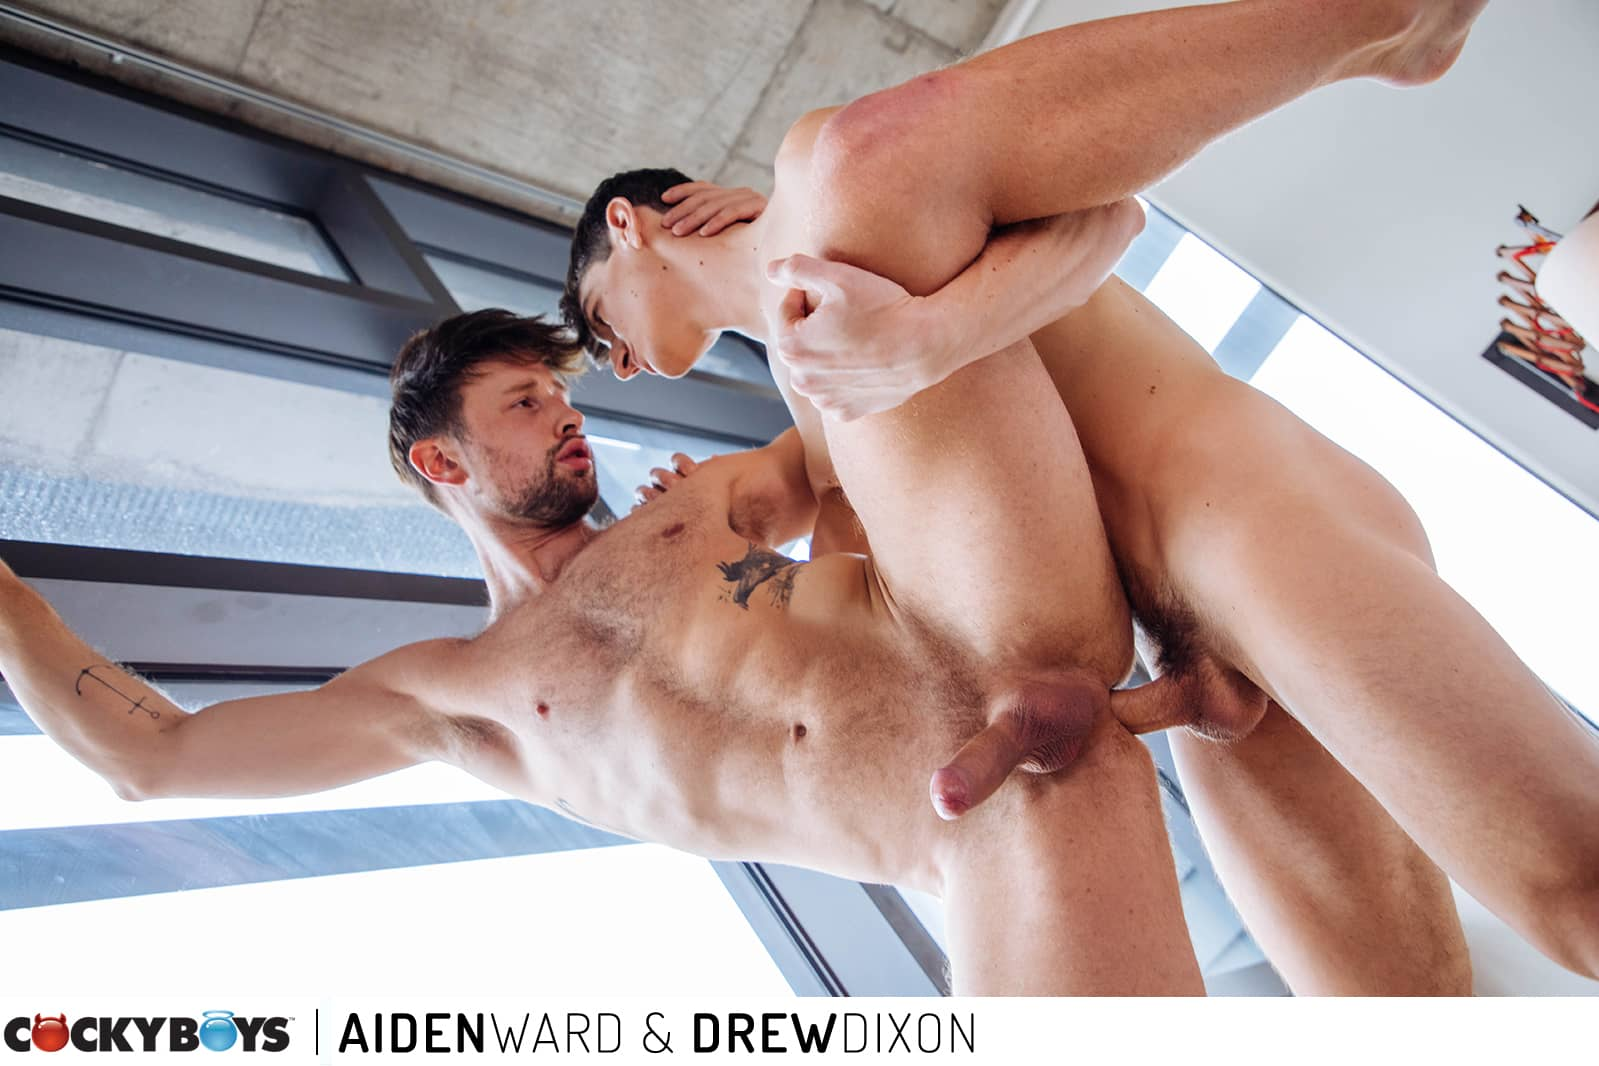 Aiden Ward and Drew Dixon